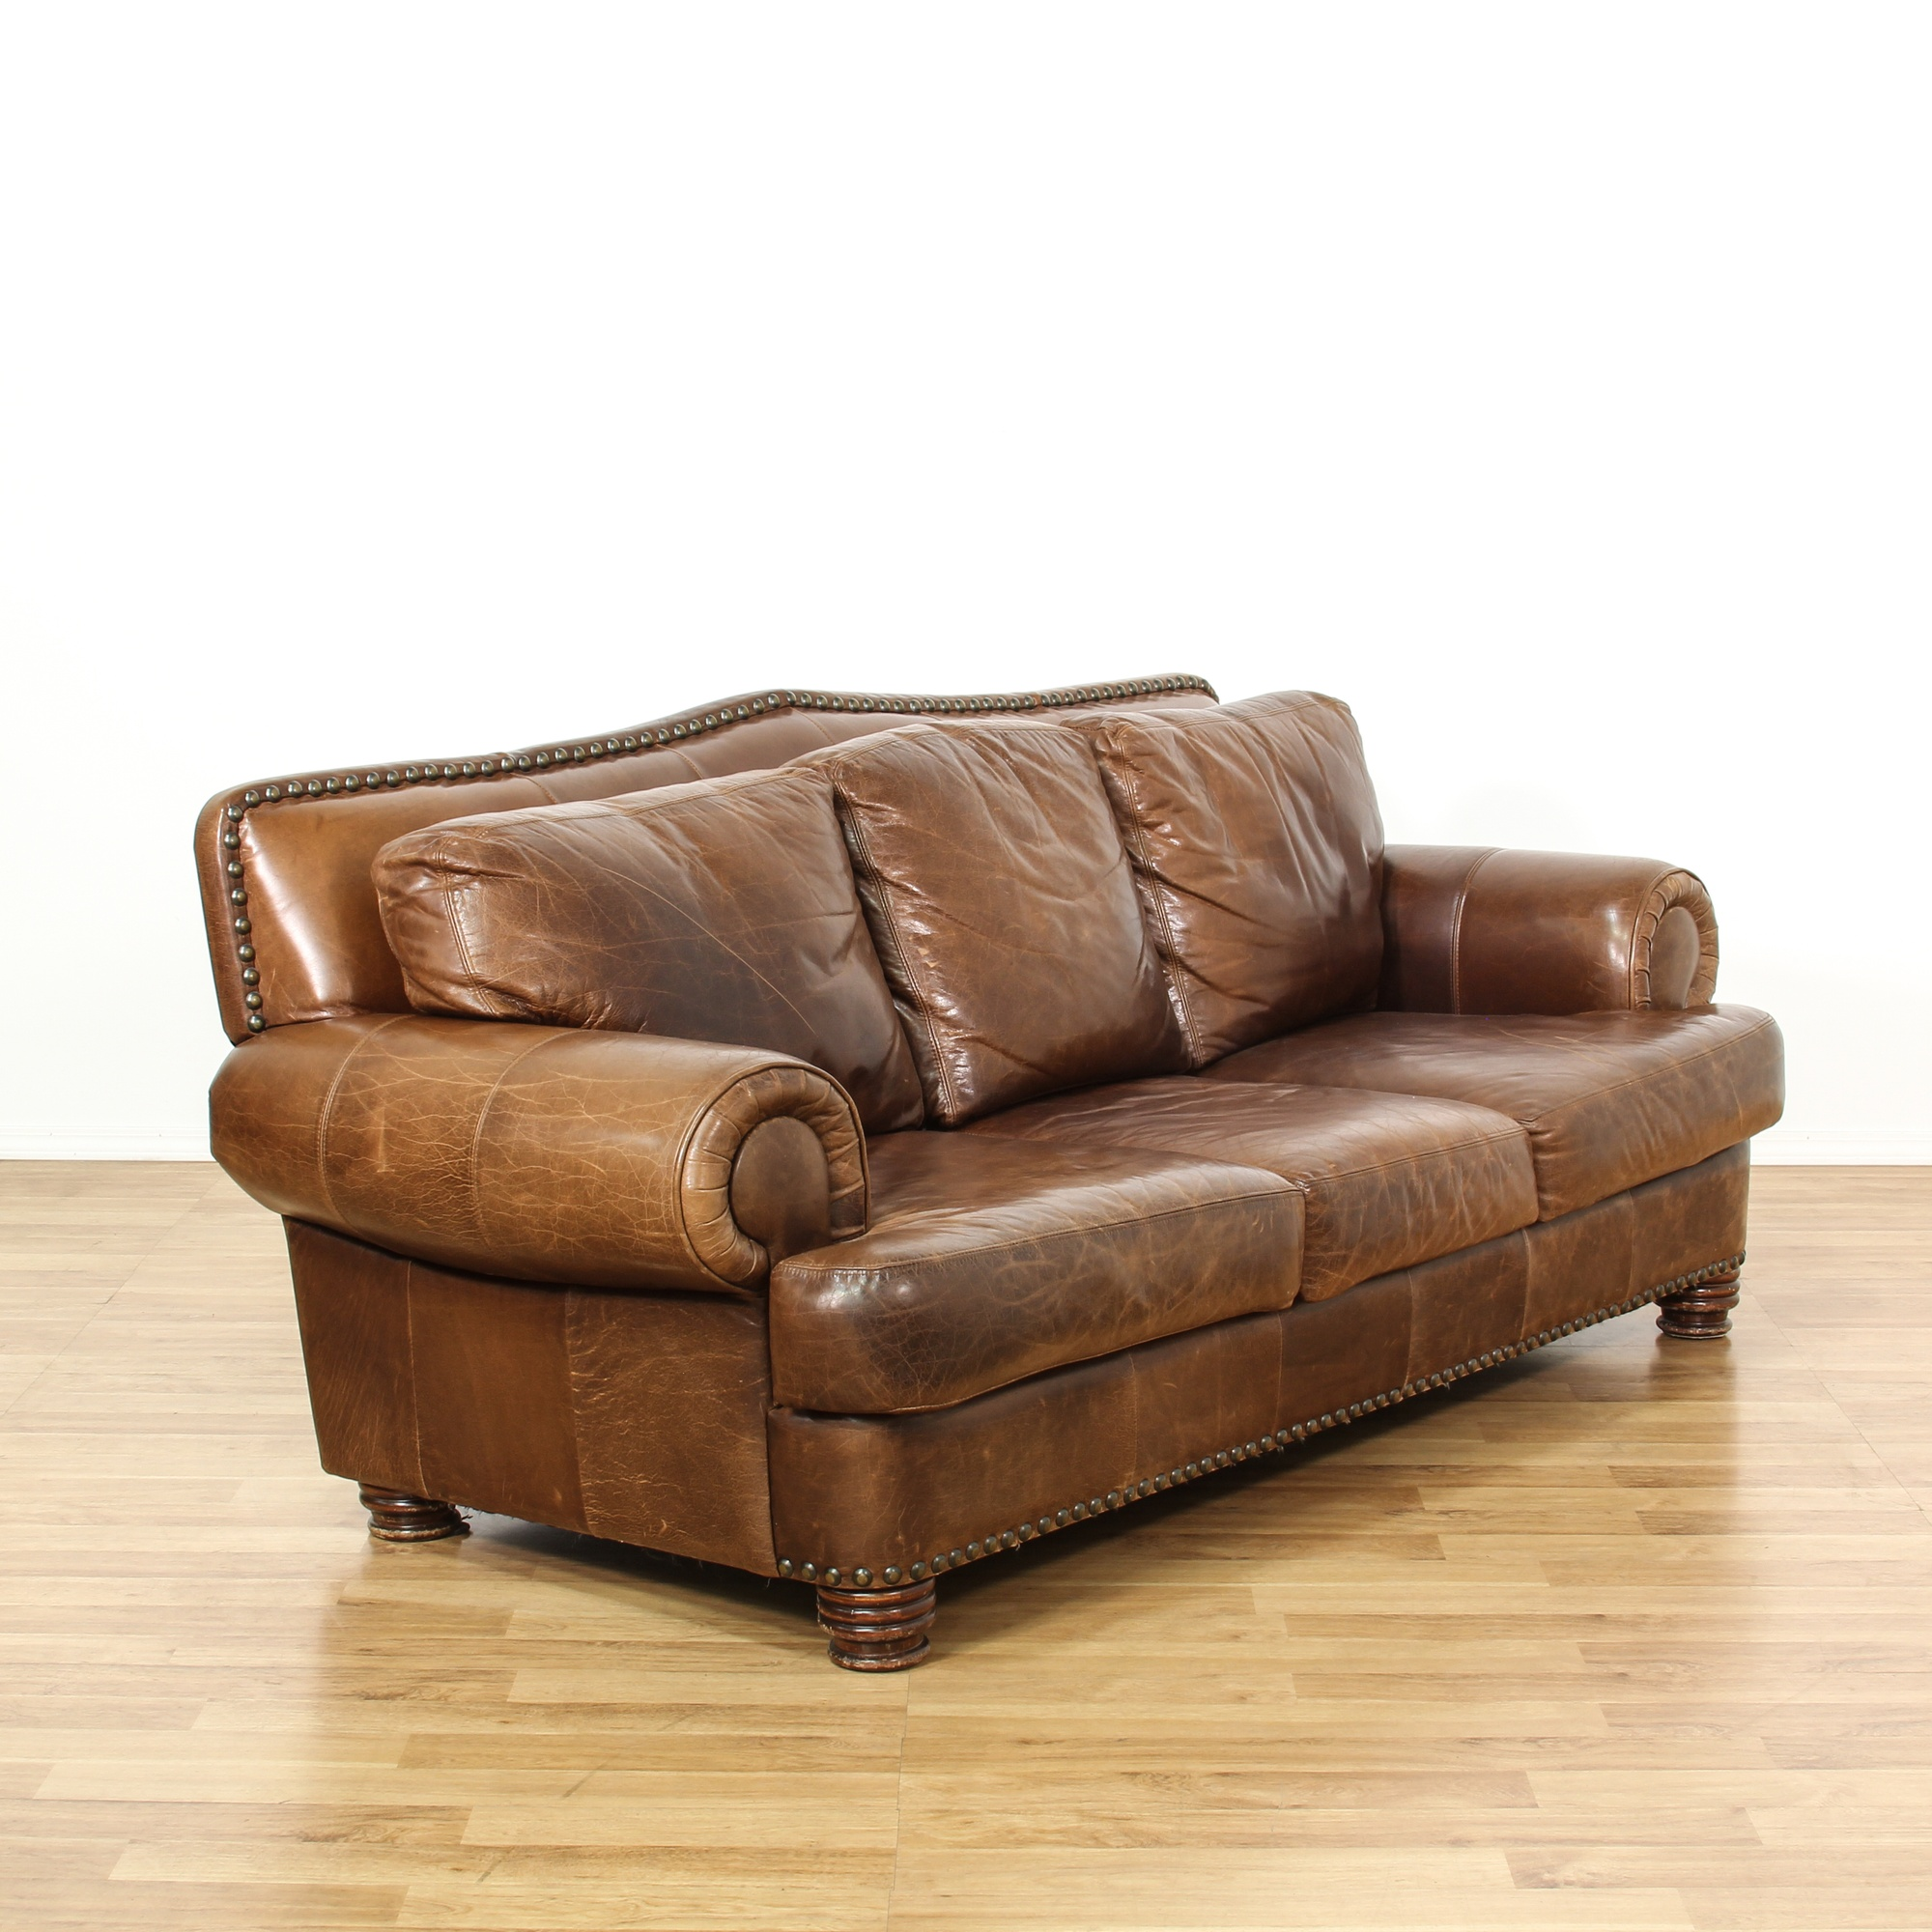 Ralph lauren style leather studded sofa loveseat vintage for Studded couch